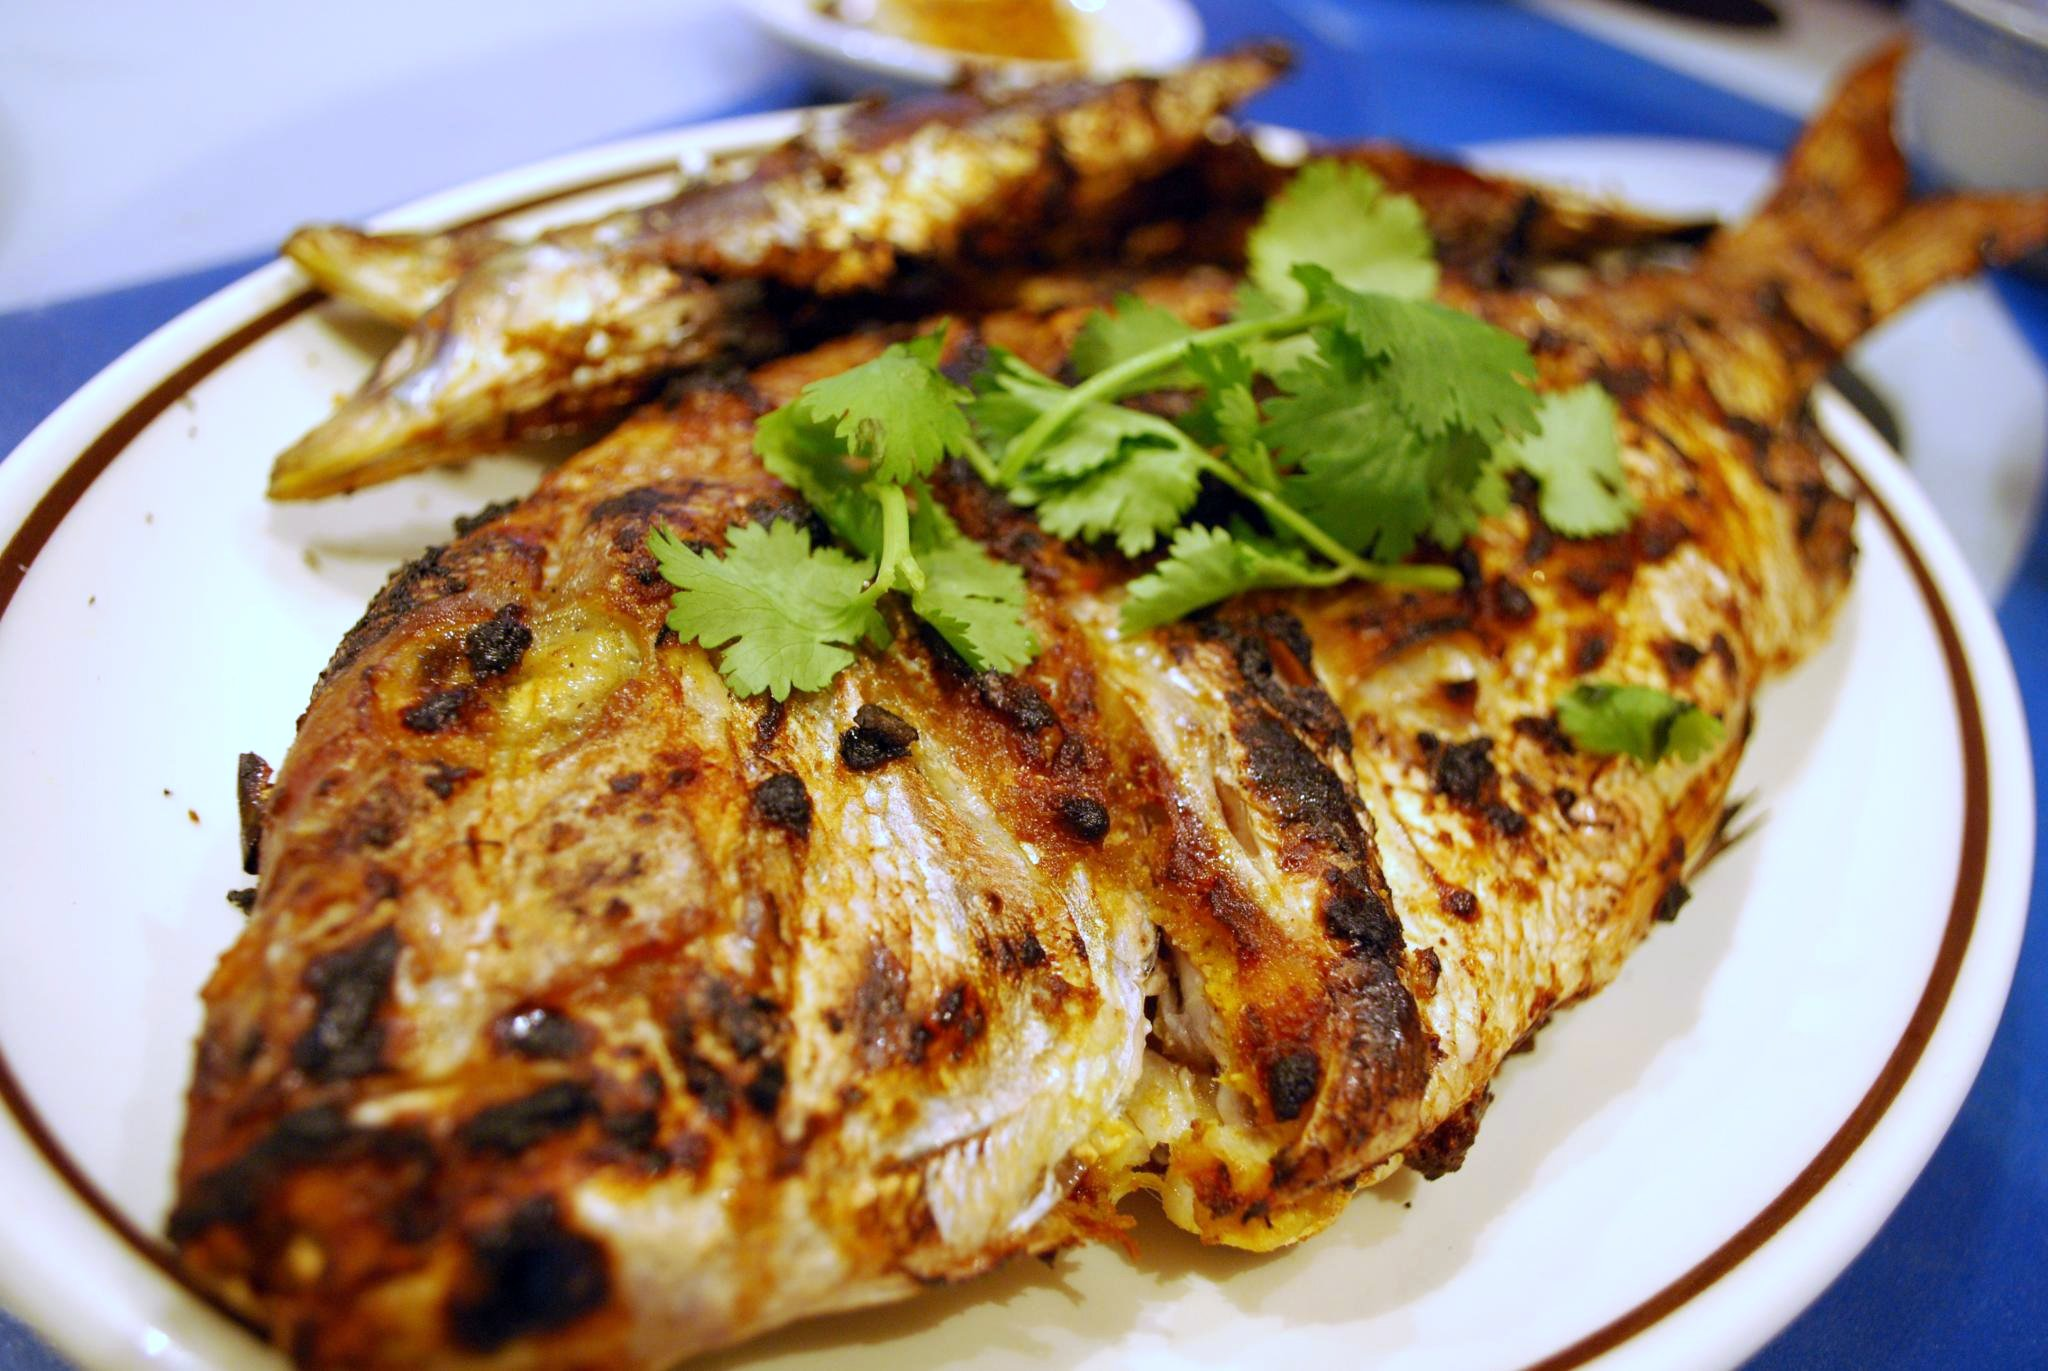 Anthony Bourdain US Heartland - Grilled Snapper - photo by Alpha under CC BY-SA 2.0